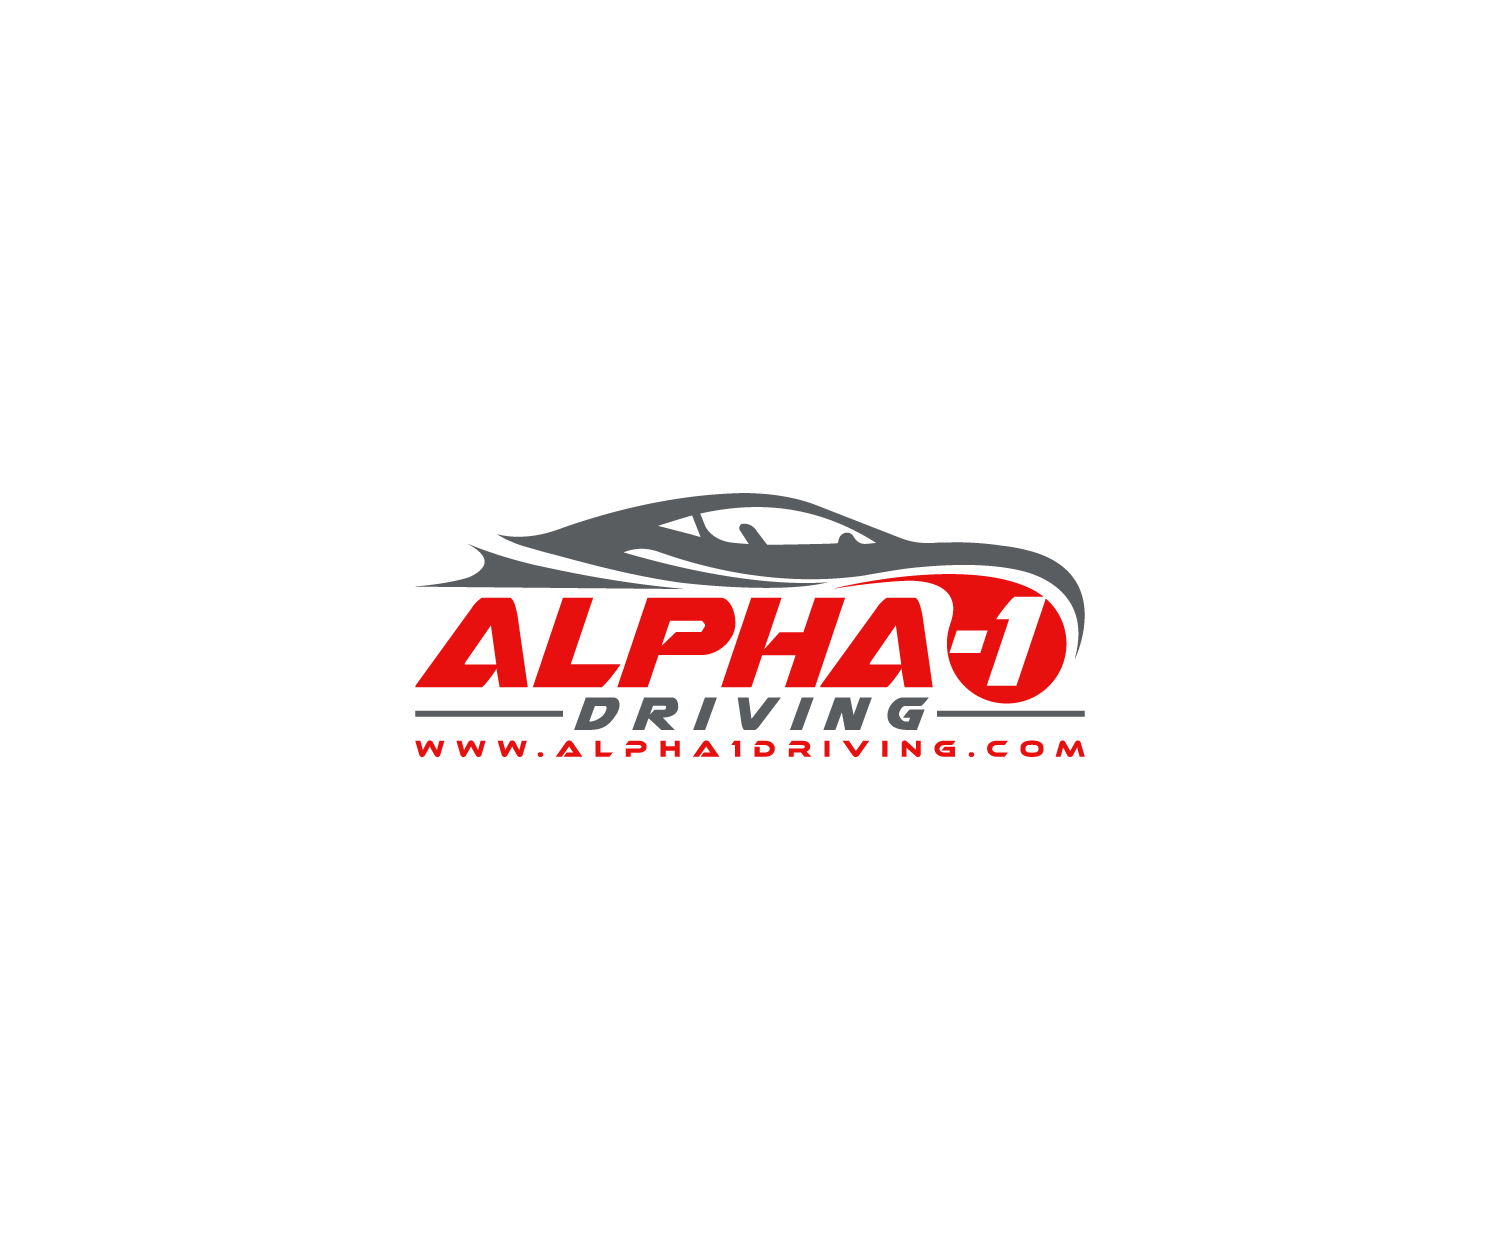 Grand Prix Driving School >> Bold Serious Driving School Logo Design For Alpha 1 Driving By